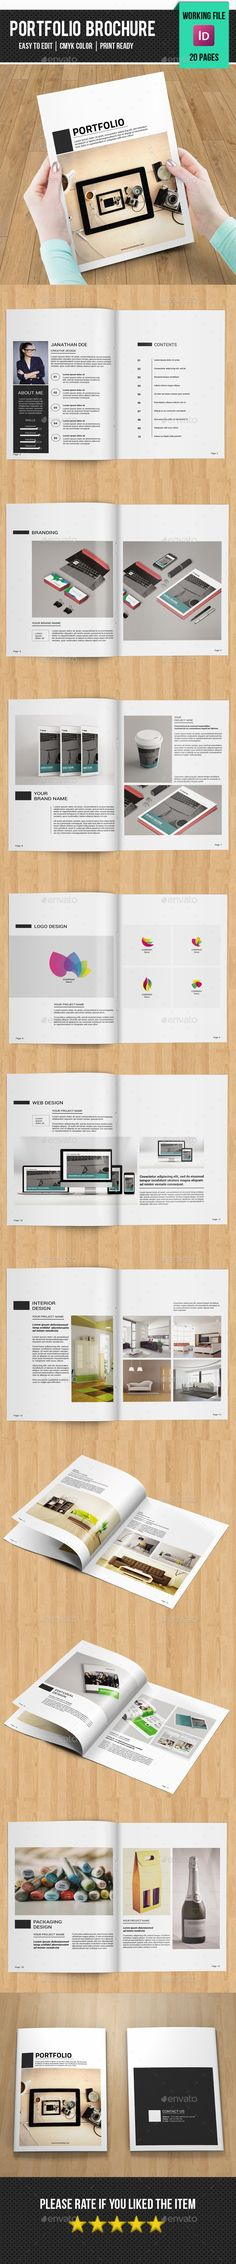 Minimal Portfolio Brochure Template InDesign INDD #design Download: http://graphicriver.net/item/minimal-portfolio-brochurev326/14024467?ref=ksioks